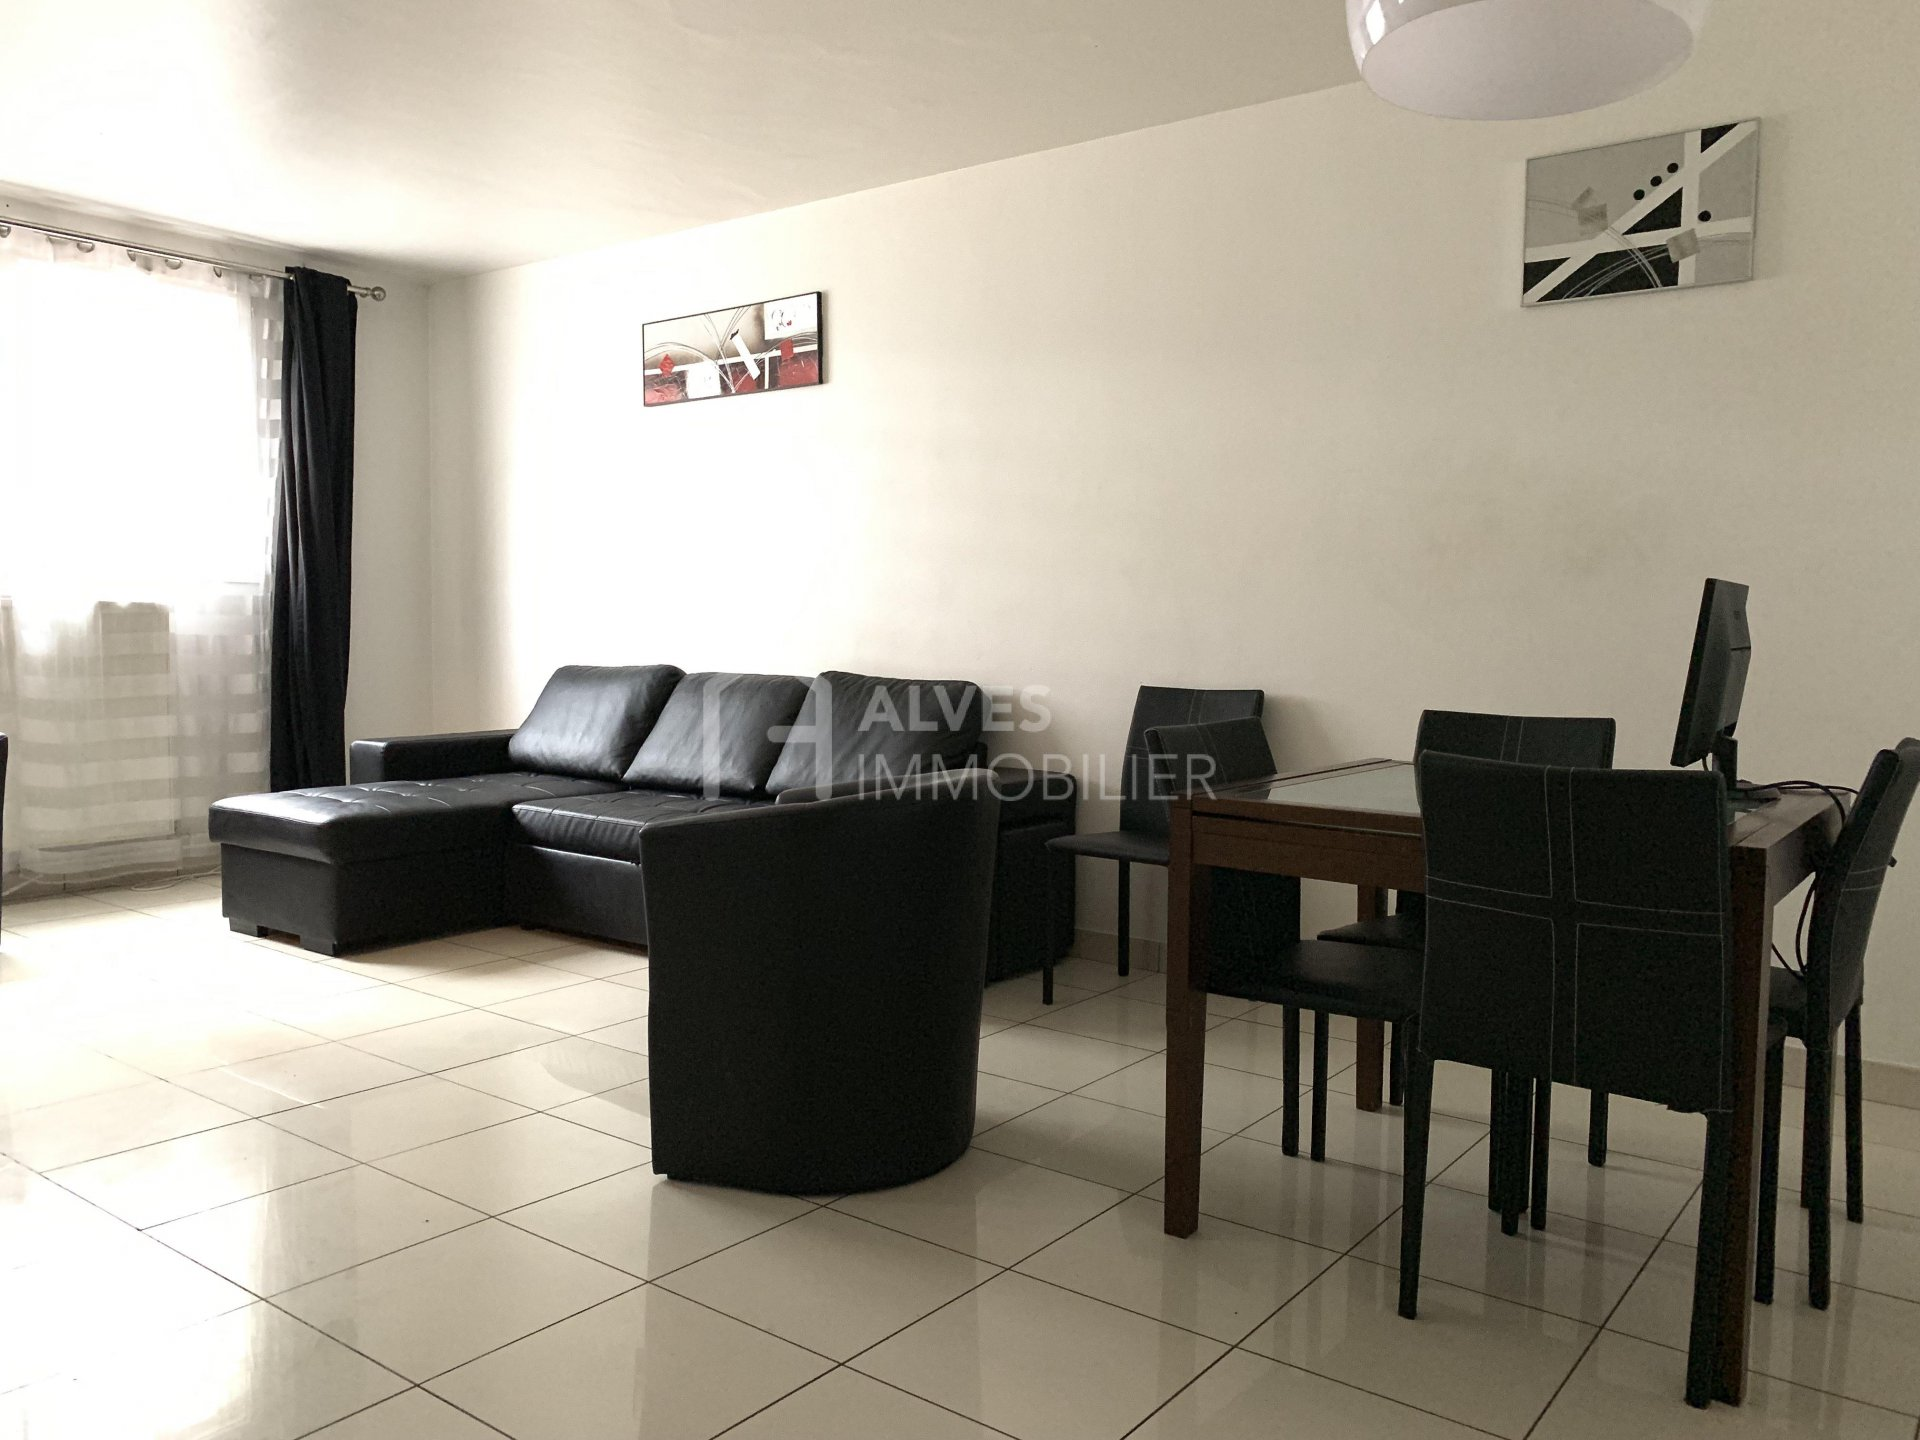 Vente Appartement - Noisiel